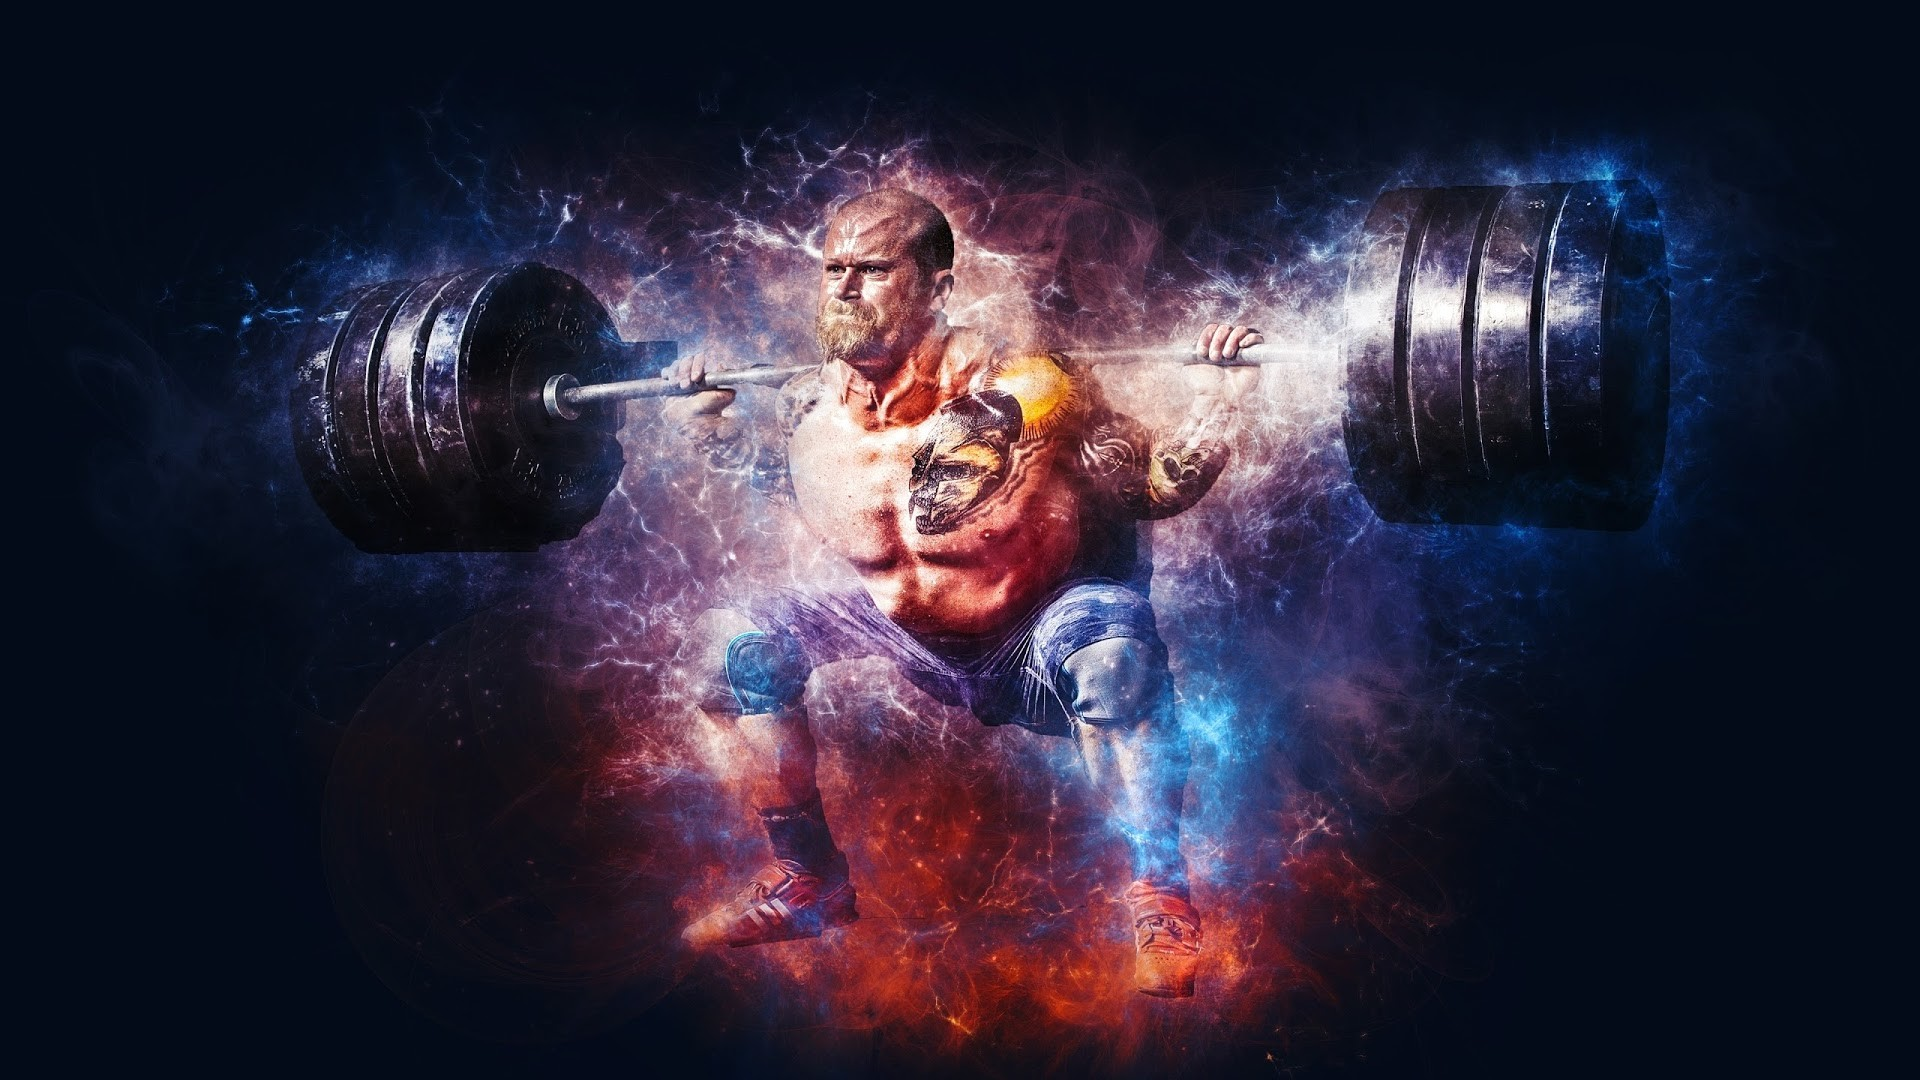 1920x1080 4K HD Wallpaper: Weightlifting at Gym · Photoshop Creativity with  Bodybuilding in this Premium Picture